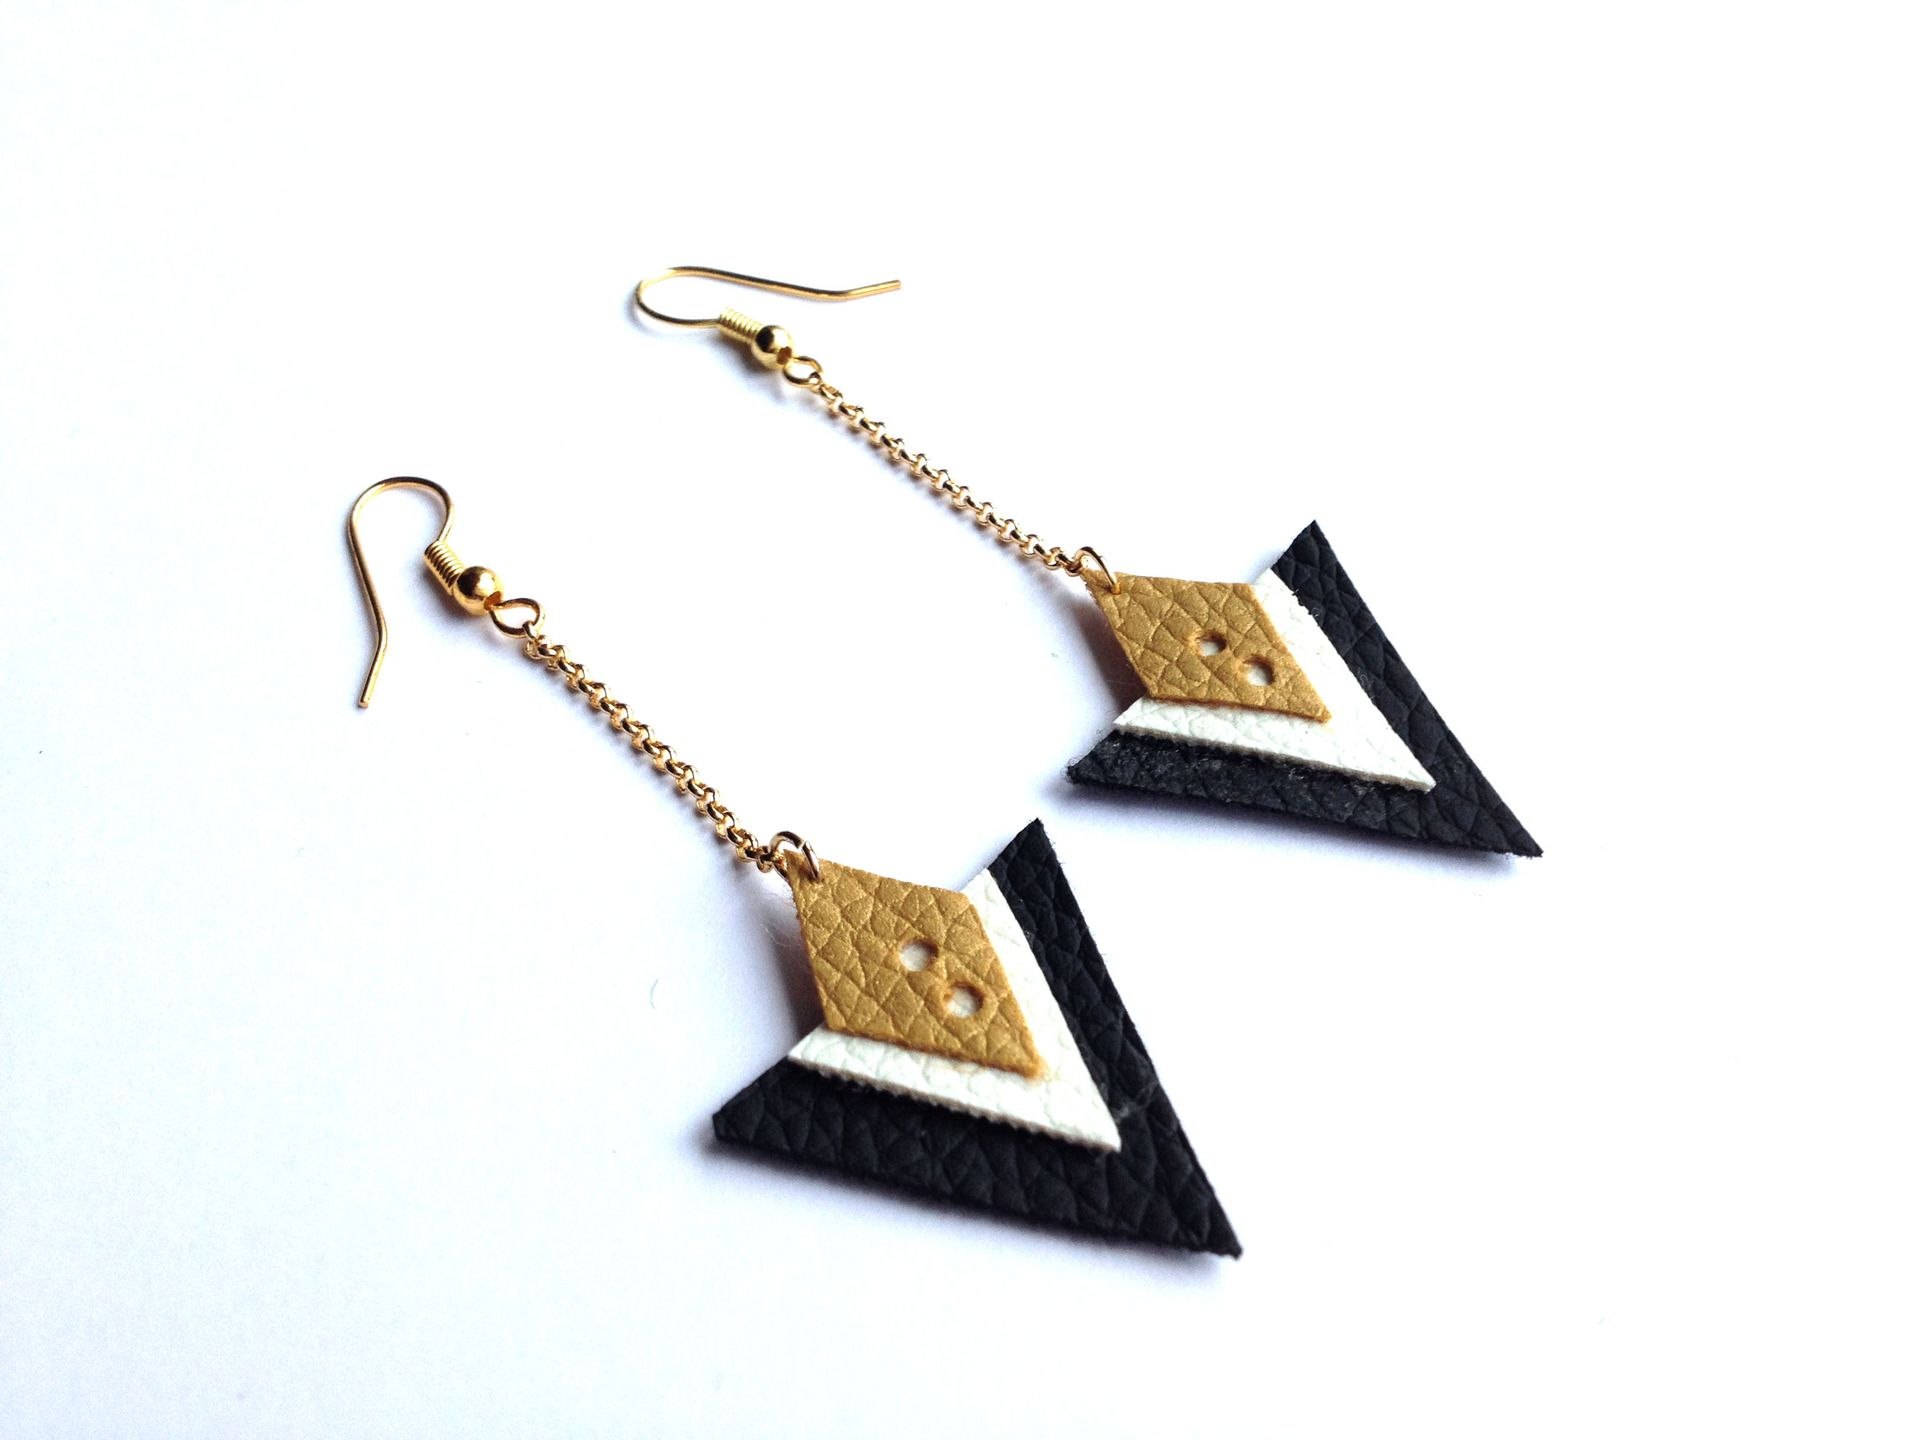 Boucle d'oreille forme triangle